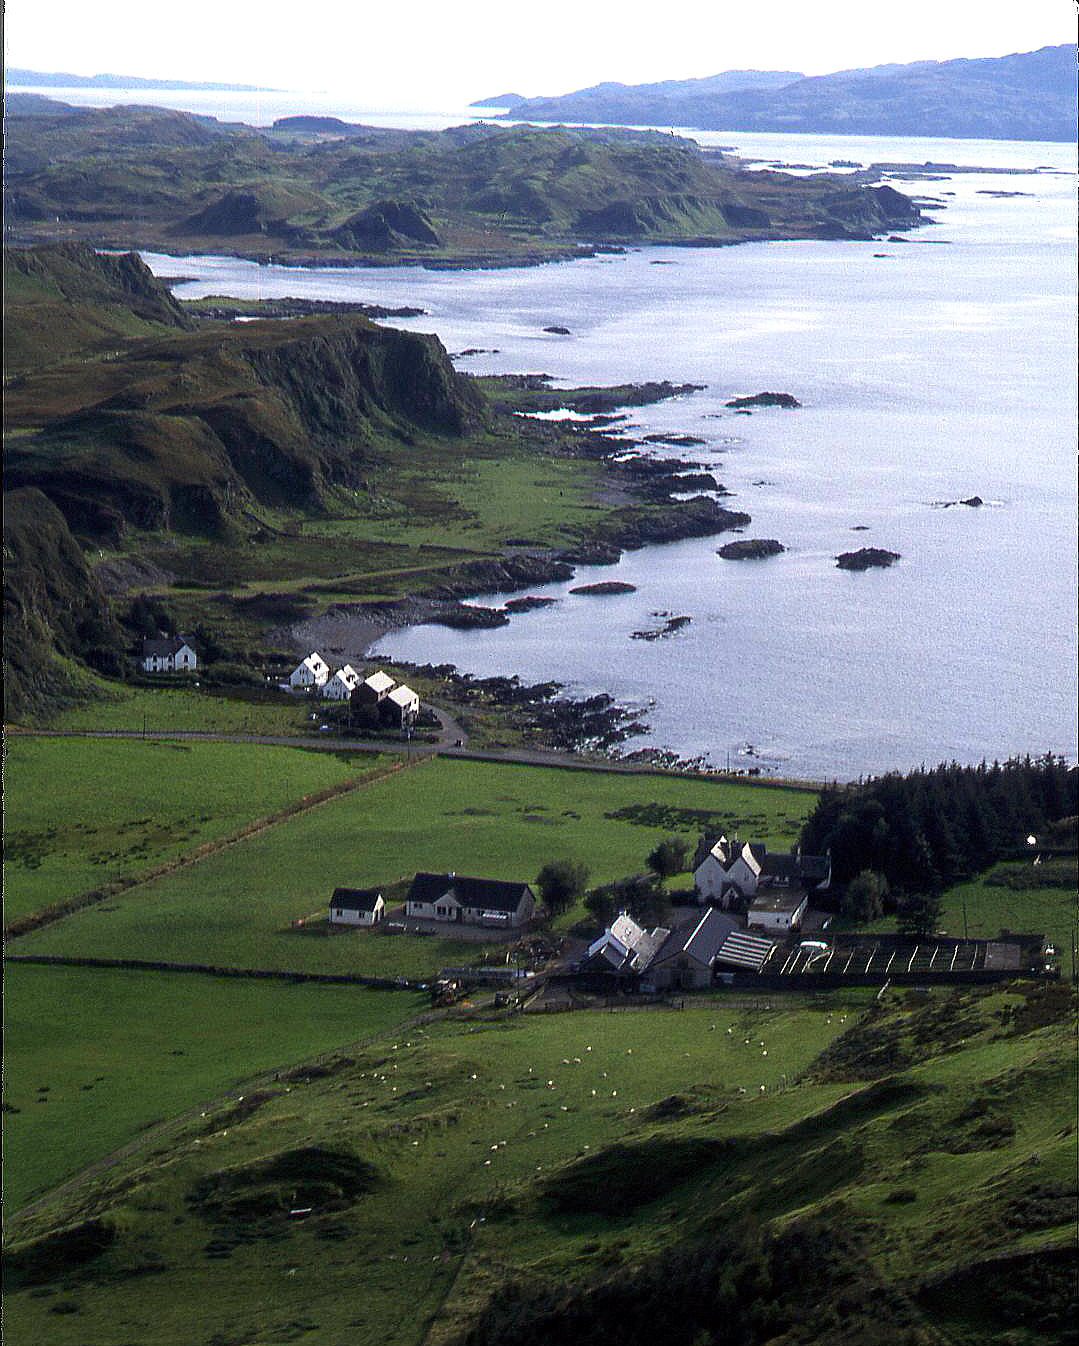 A view en route to Loch Awe in western Scotland, 2002